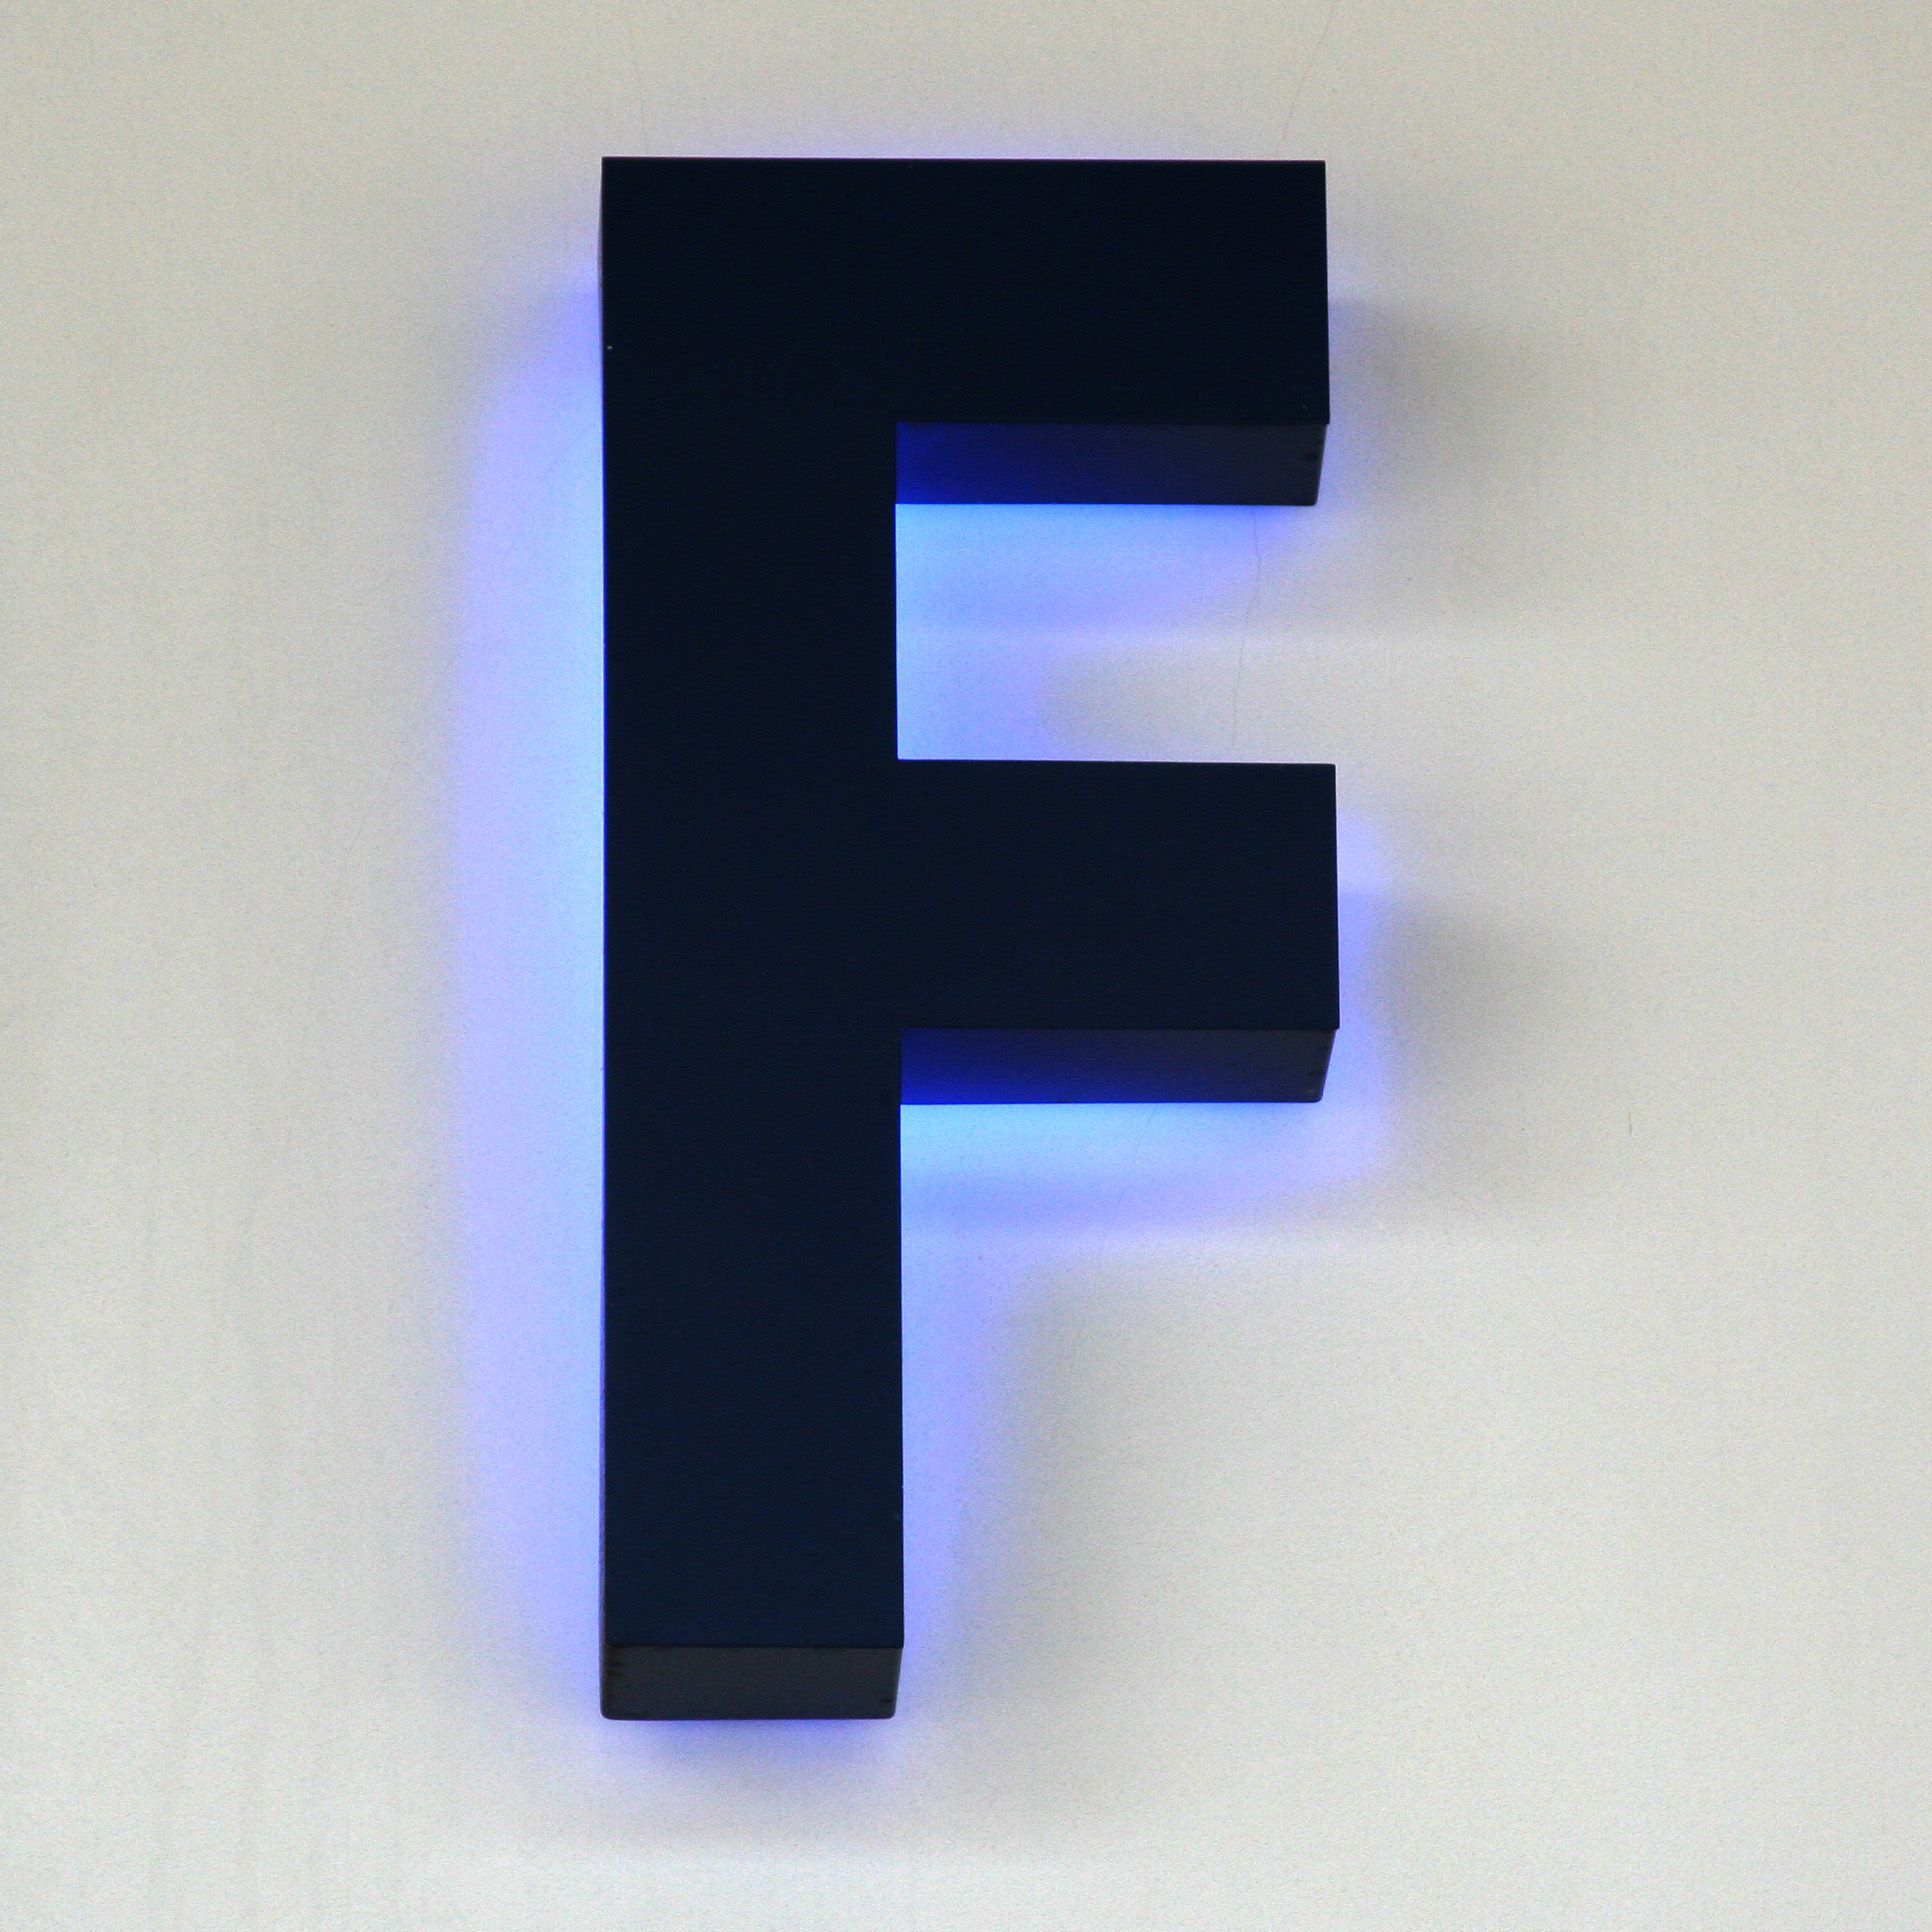 f Galleries Typography One Letter letter F